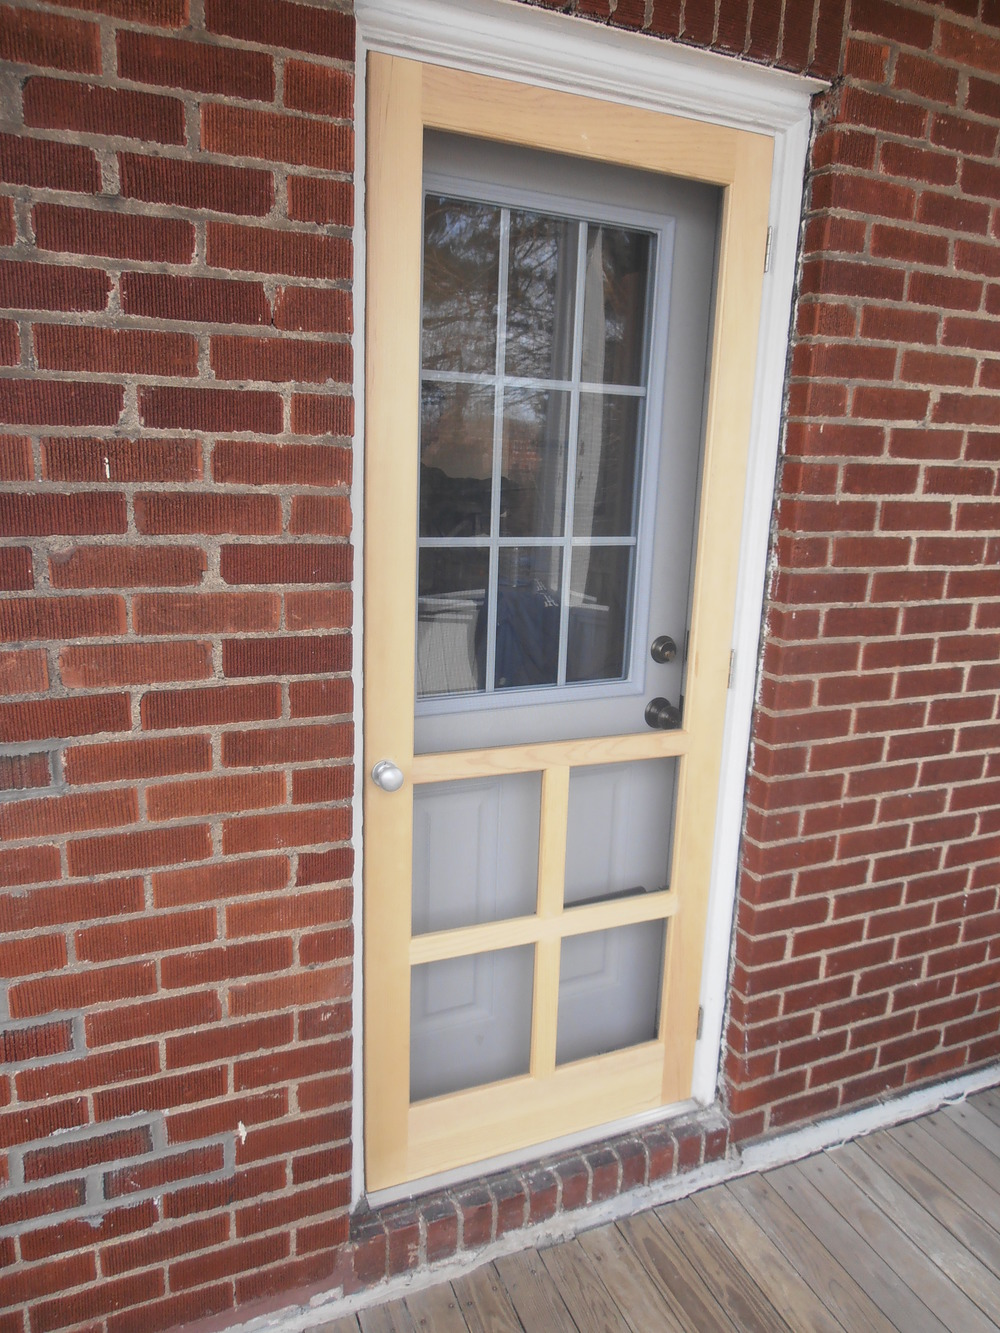 1 Nice Screen Door Brookline Williamson.JPG